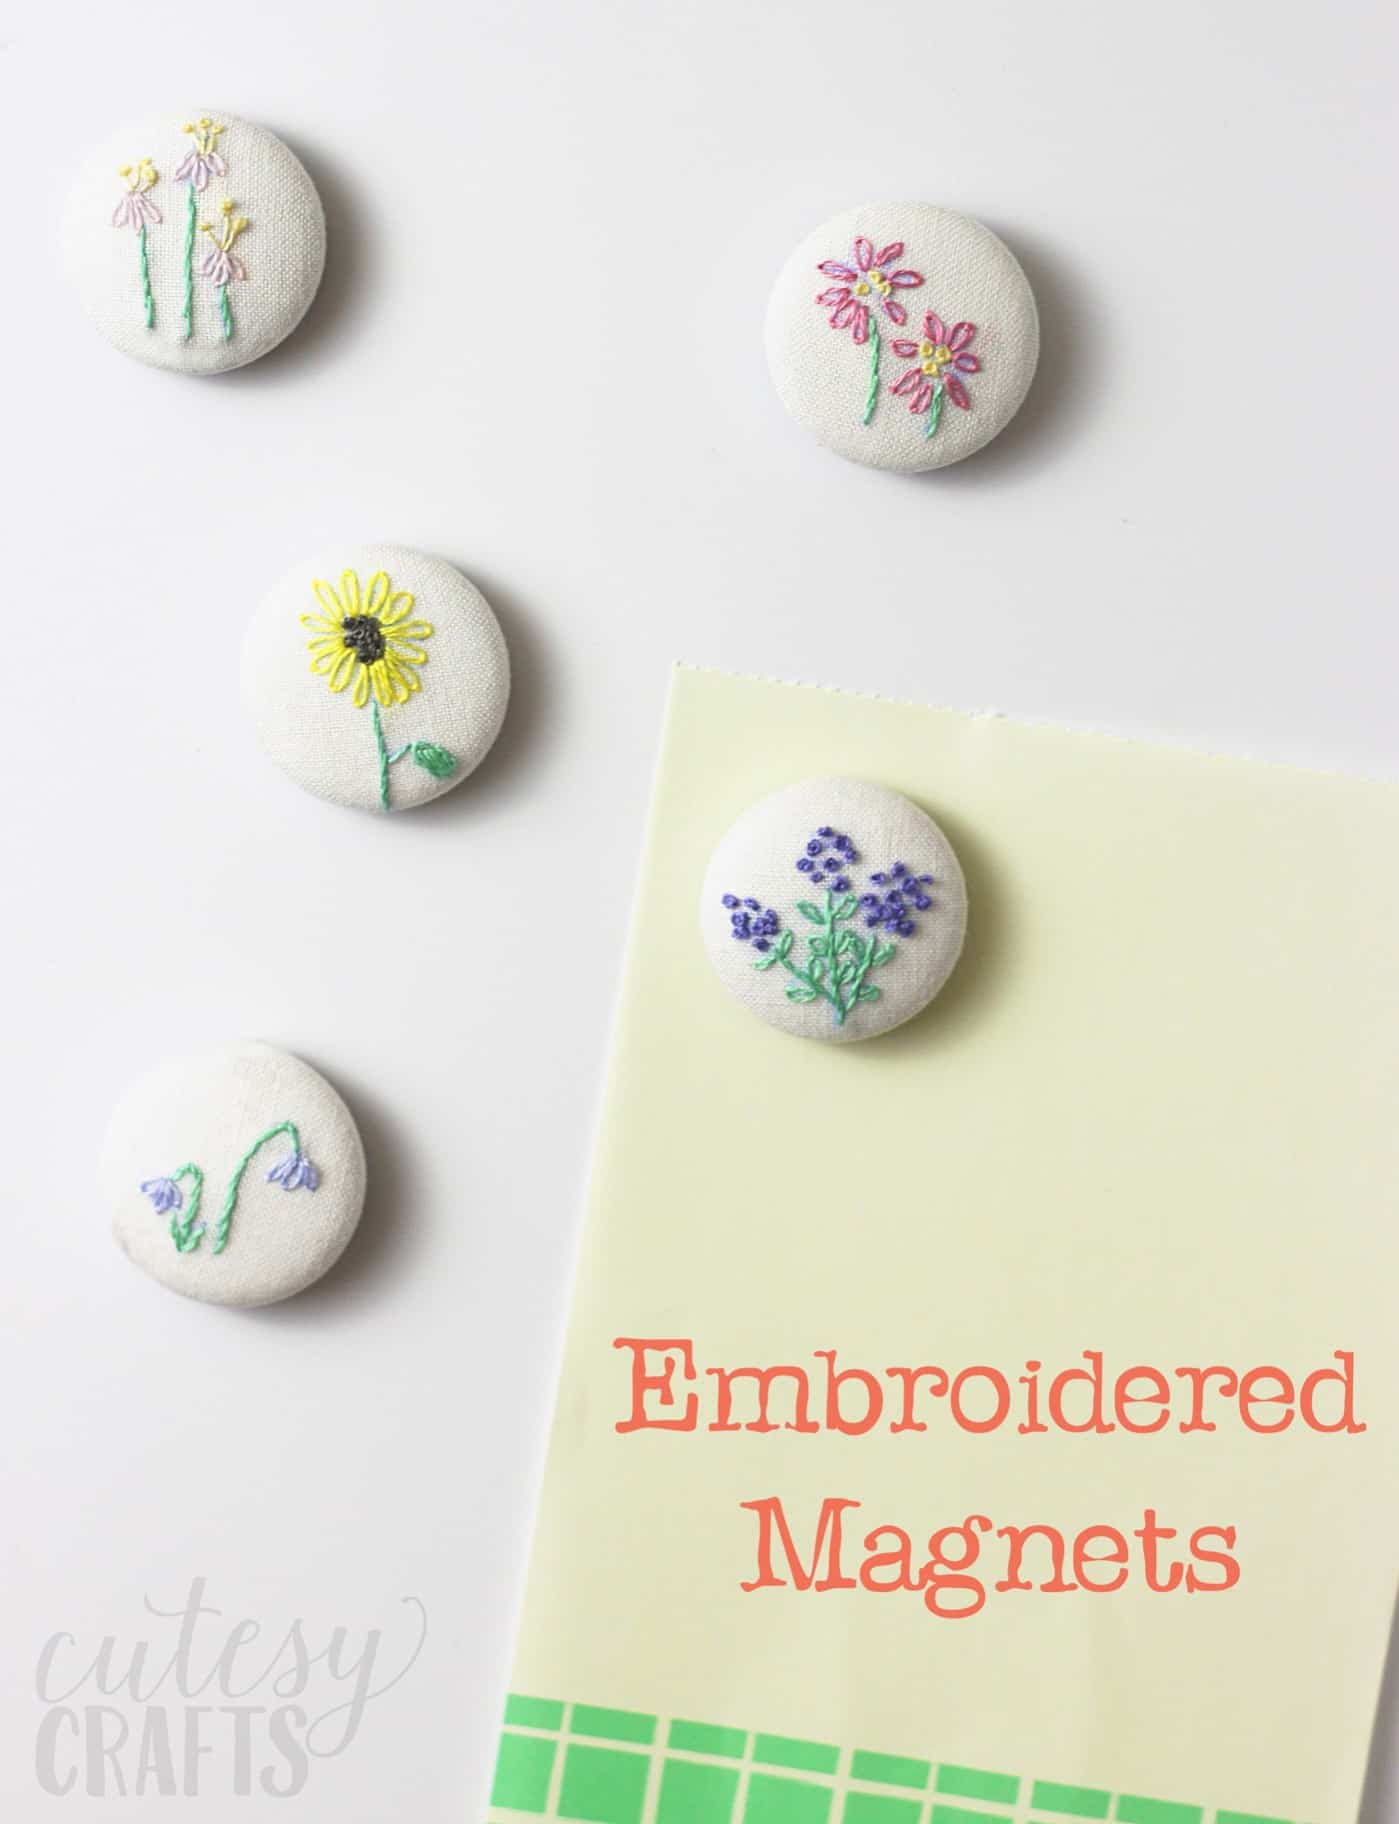 If you love the look of hand embroidery, these DIY magnets are perfect for you. The delicate floral pattern is so pretty! These make great gifts too.